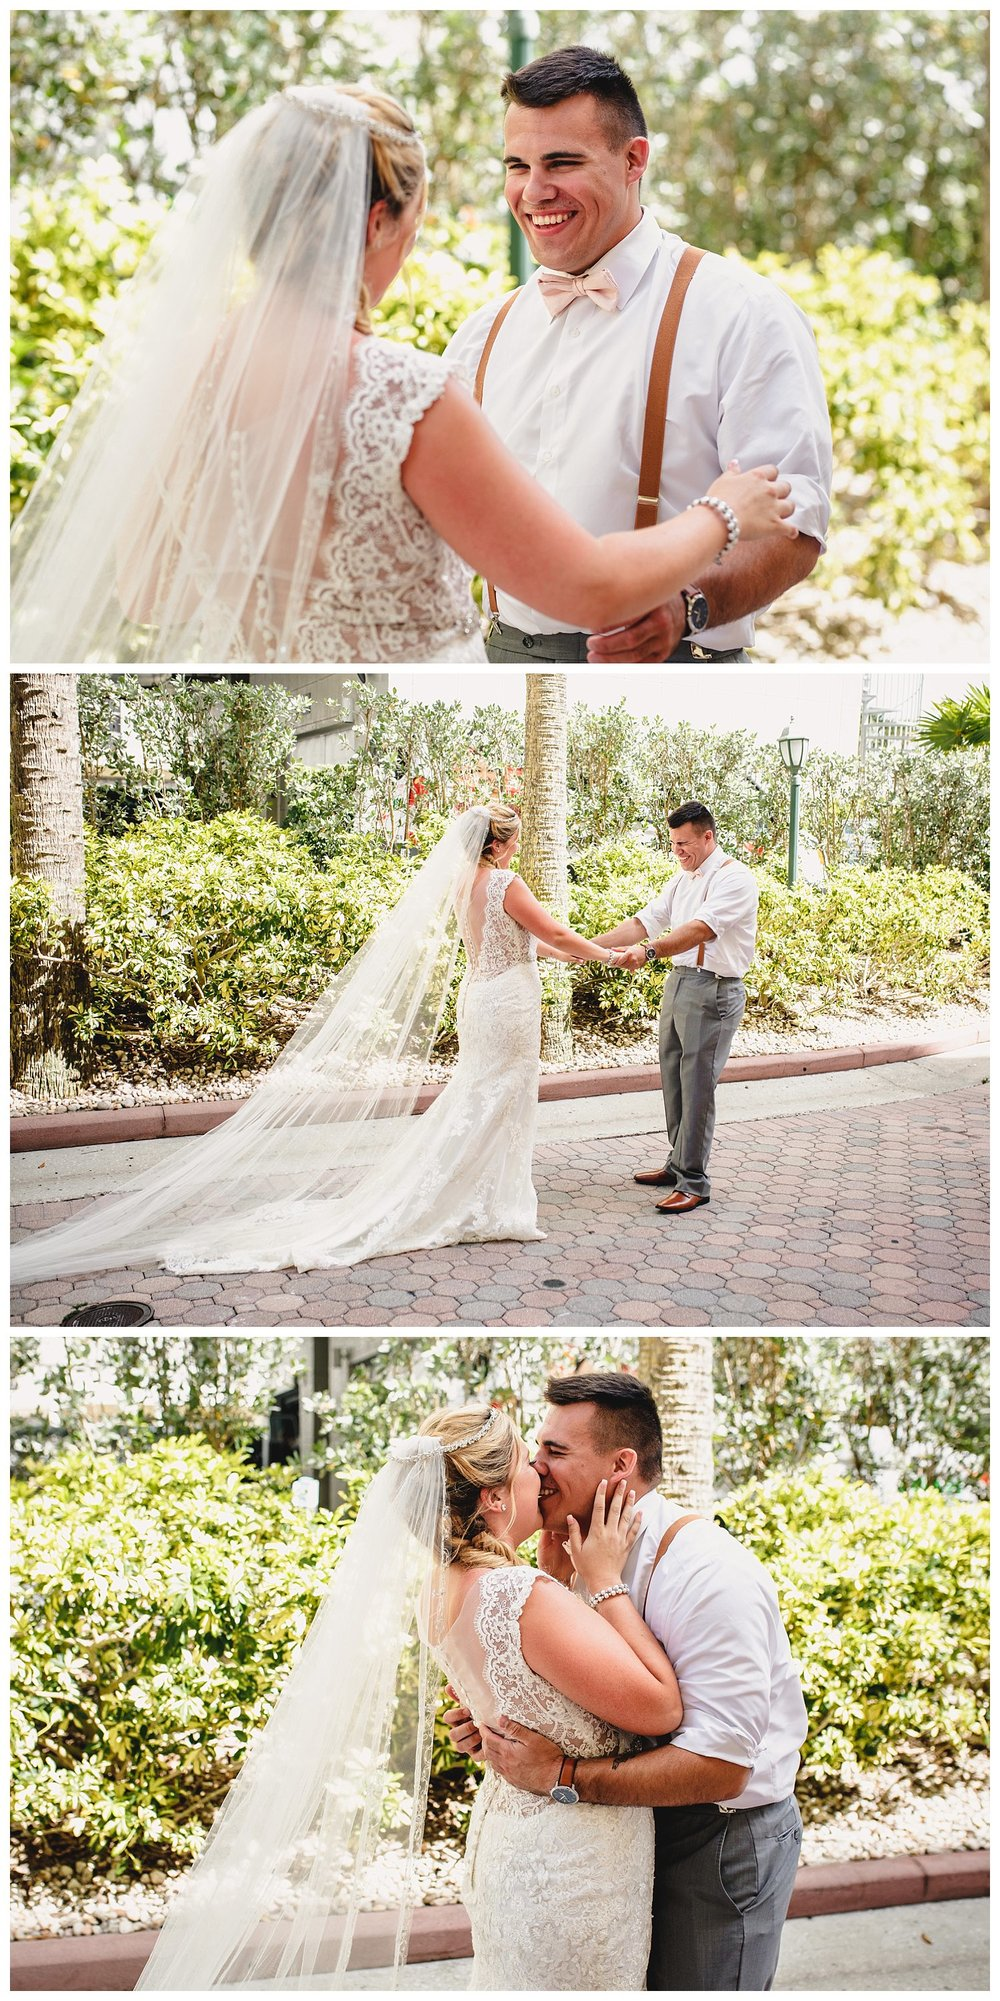 Kelsey_Diane_Photography_Destination_Wedding_Sarasota_Florida_Beach_Wedding_Alex_Austin_0632.jpg